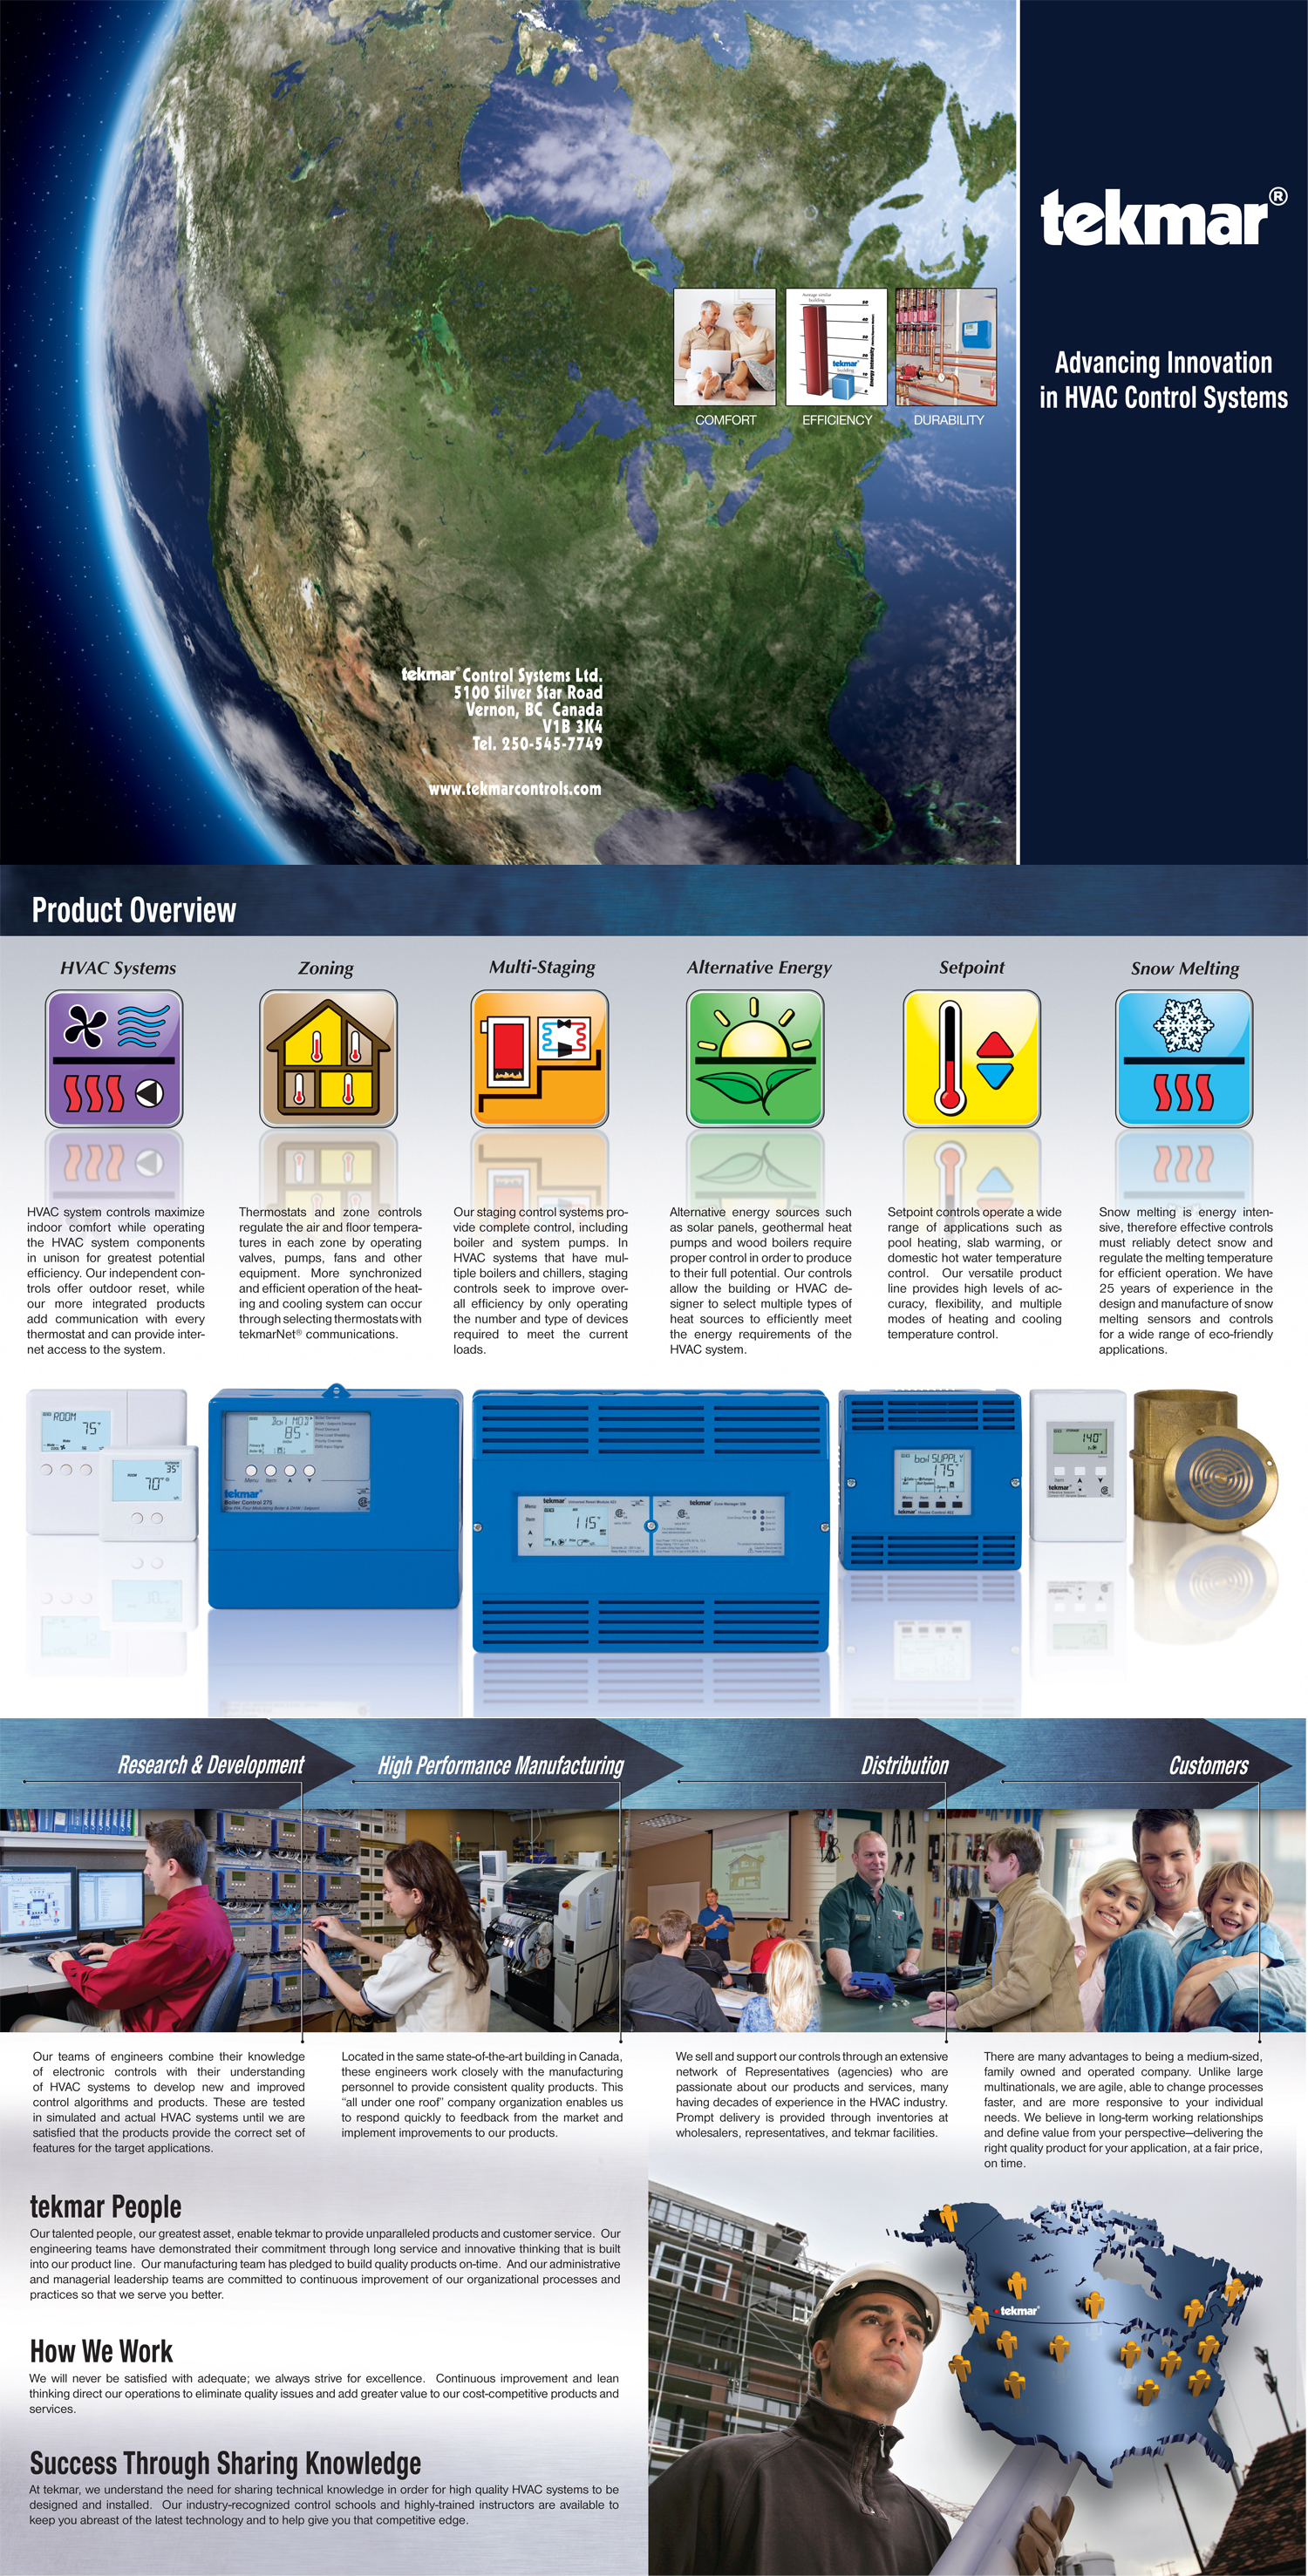 tekmar Corporate Brochure | Twin Creek Media